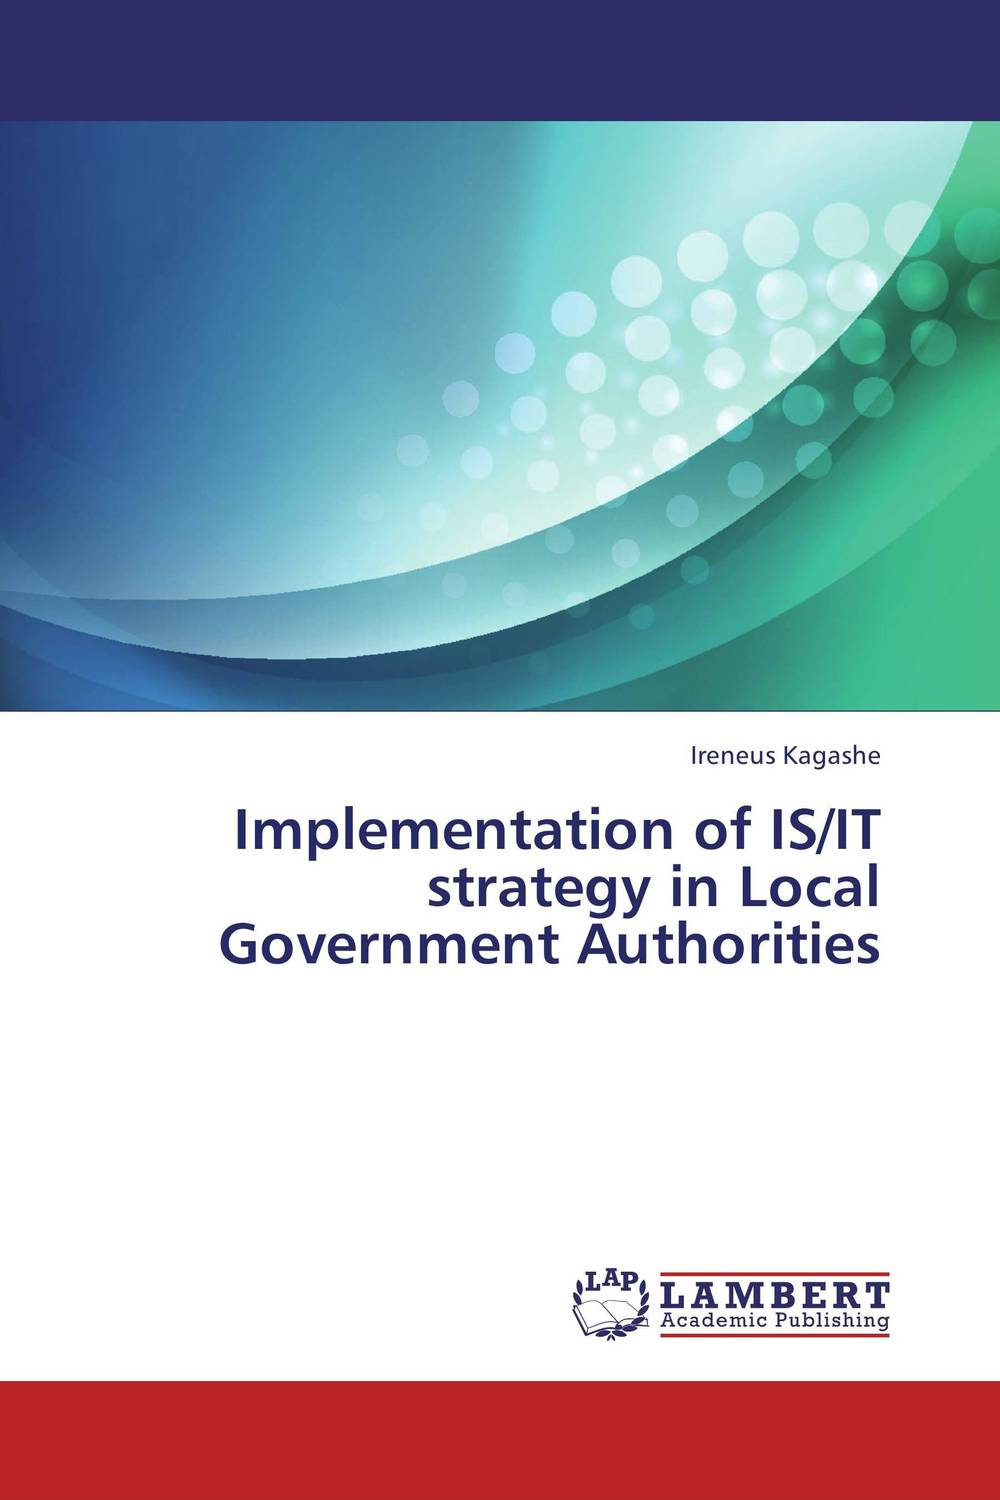 Implementation of IS/IT strategy in Local Government Authorities i manev social capital and strategy effectiveness an empirical study of entrepreneurial ventures in a transition economy